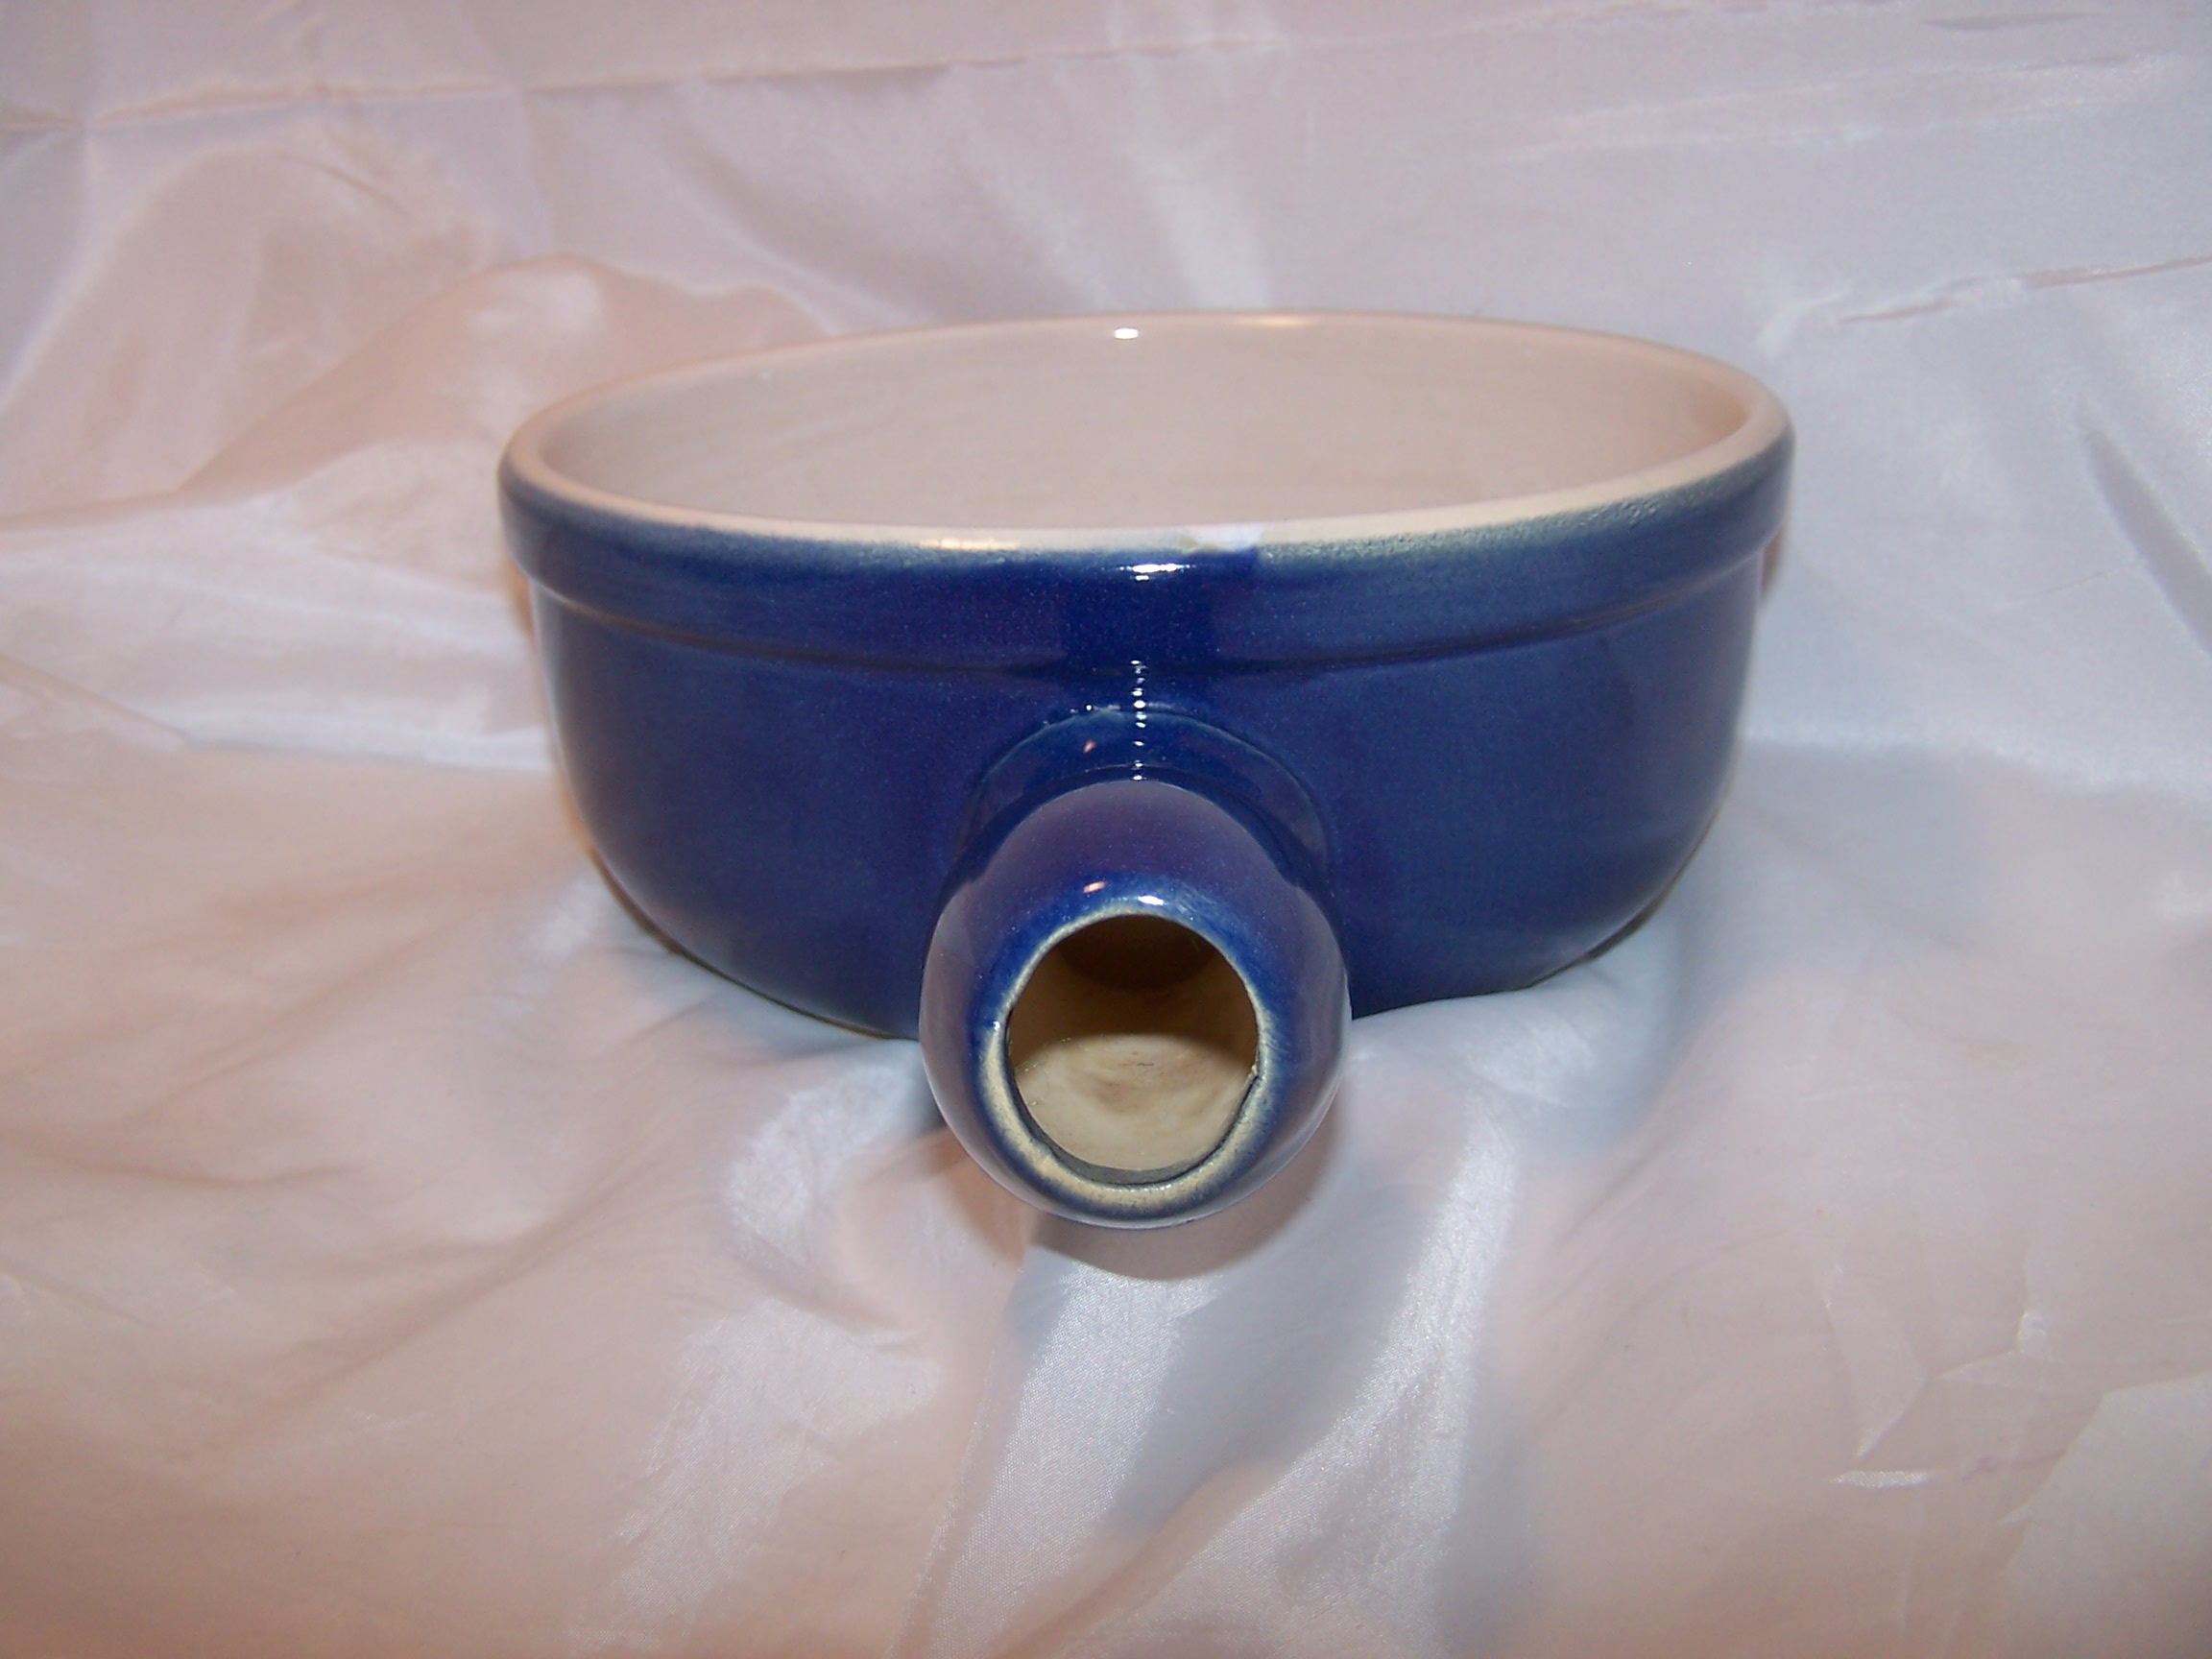 Image 1 of Cooking Pot, Cobalt Blue Microwave Stoneware, CCF, France